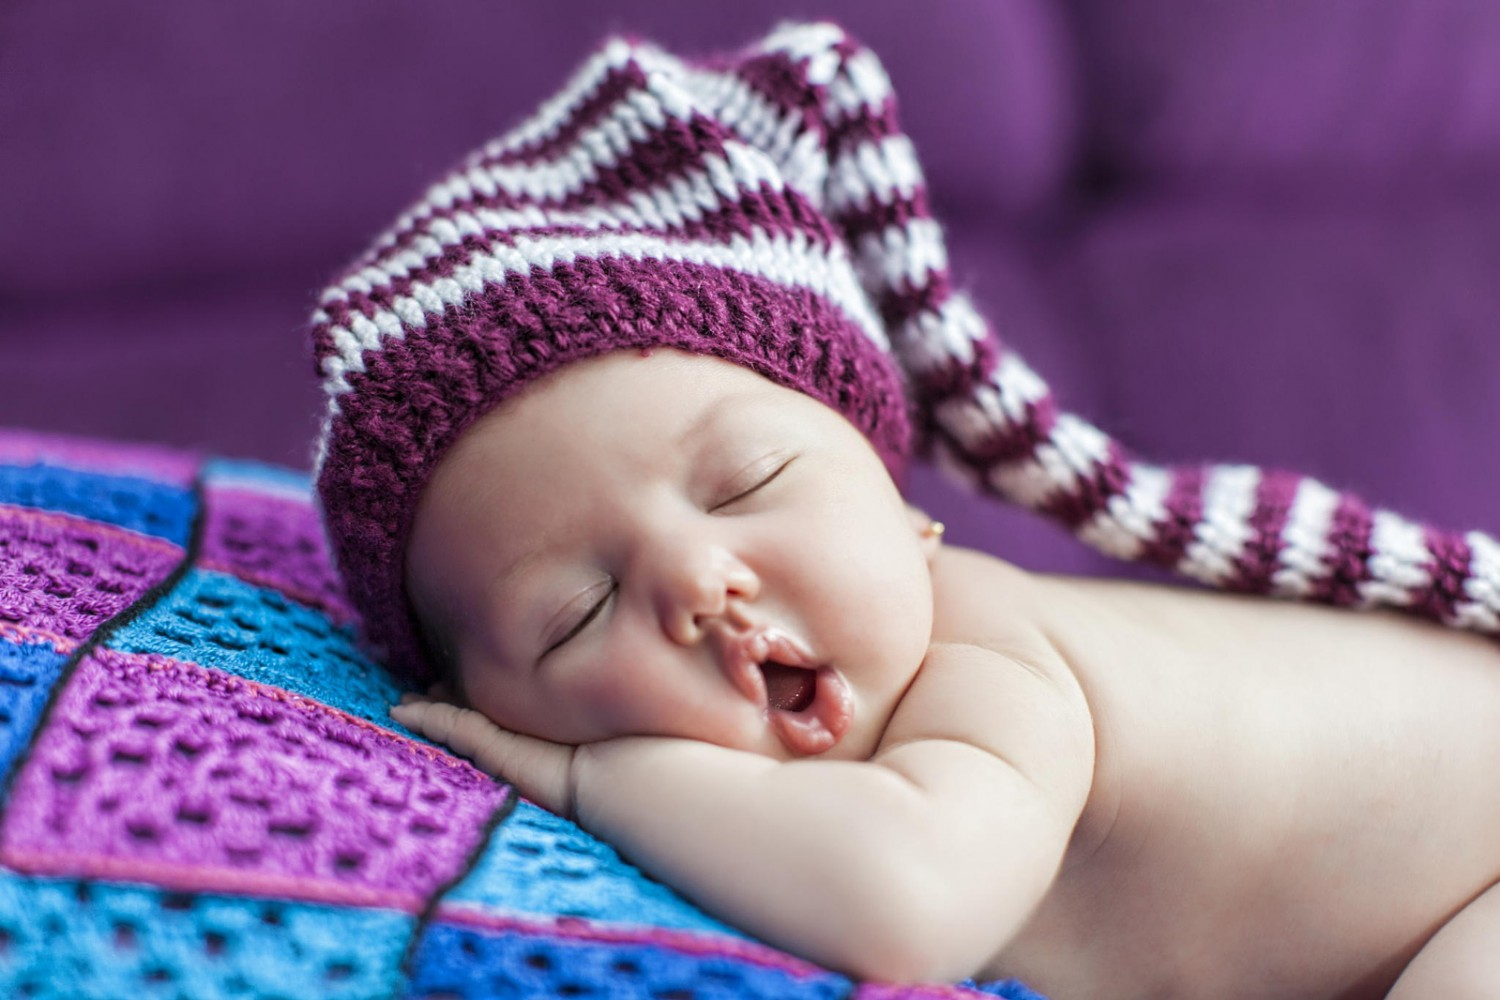 30 Most Heart-Melting Newborn Photos on 500px